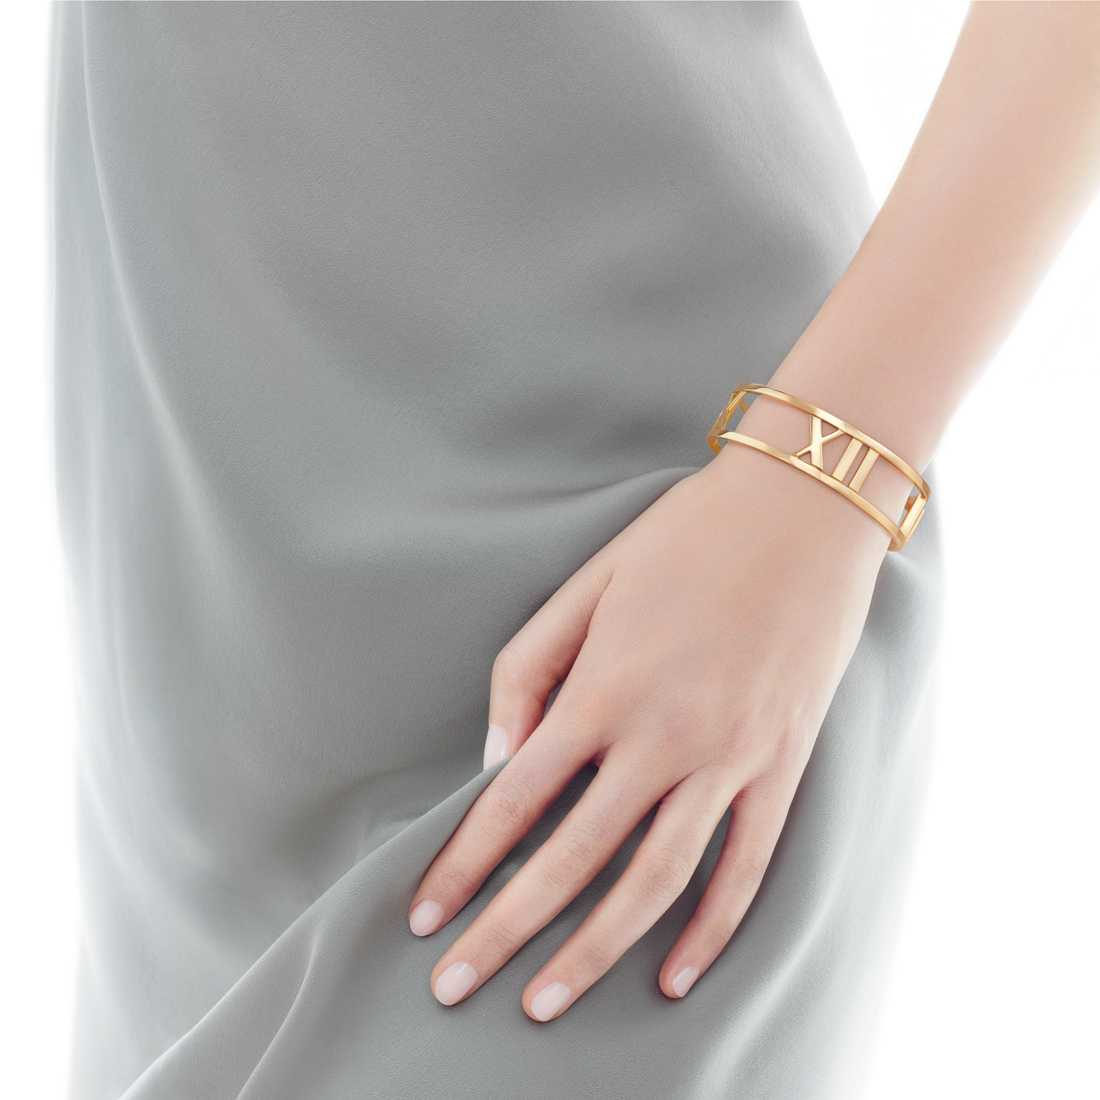 Tiffany's Atlas Medium Bangle Yellow 18K Gold